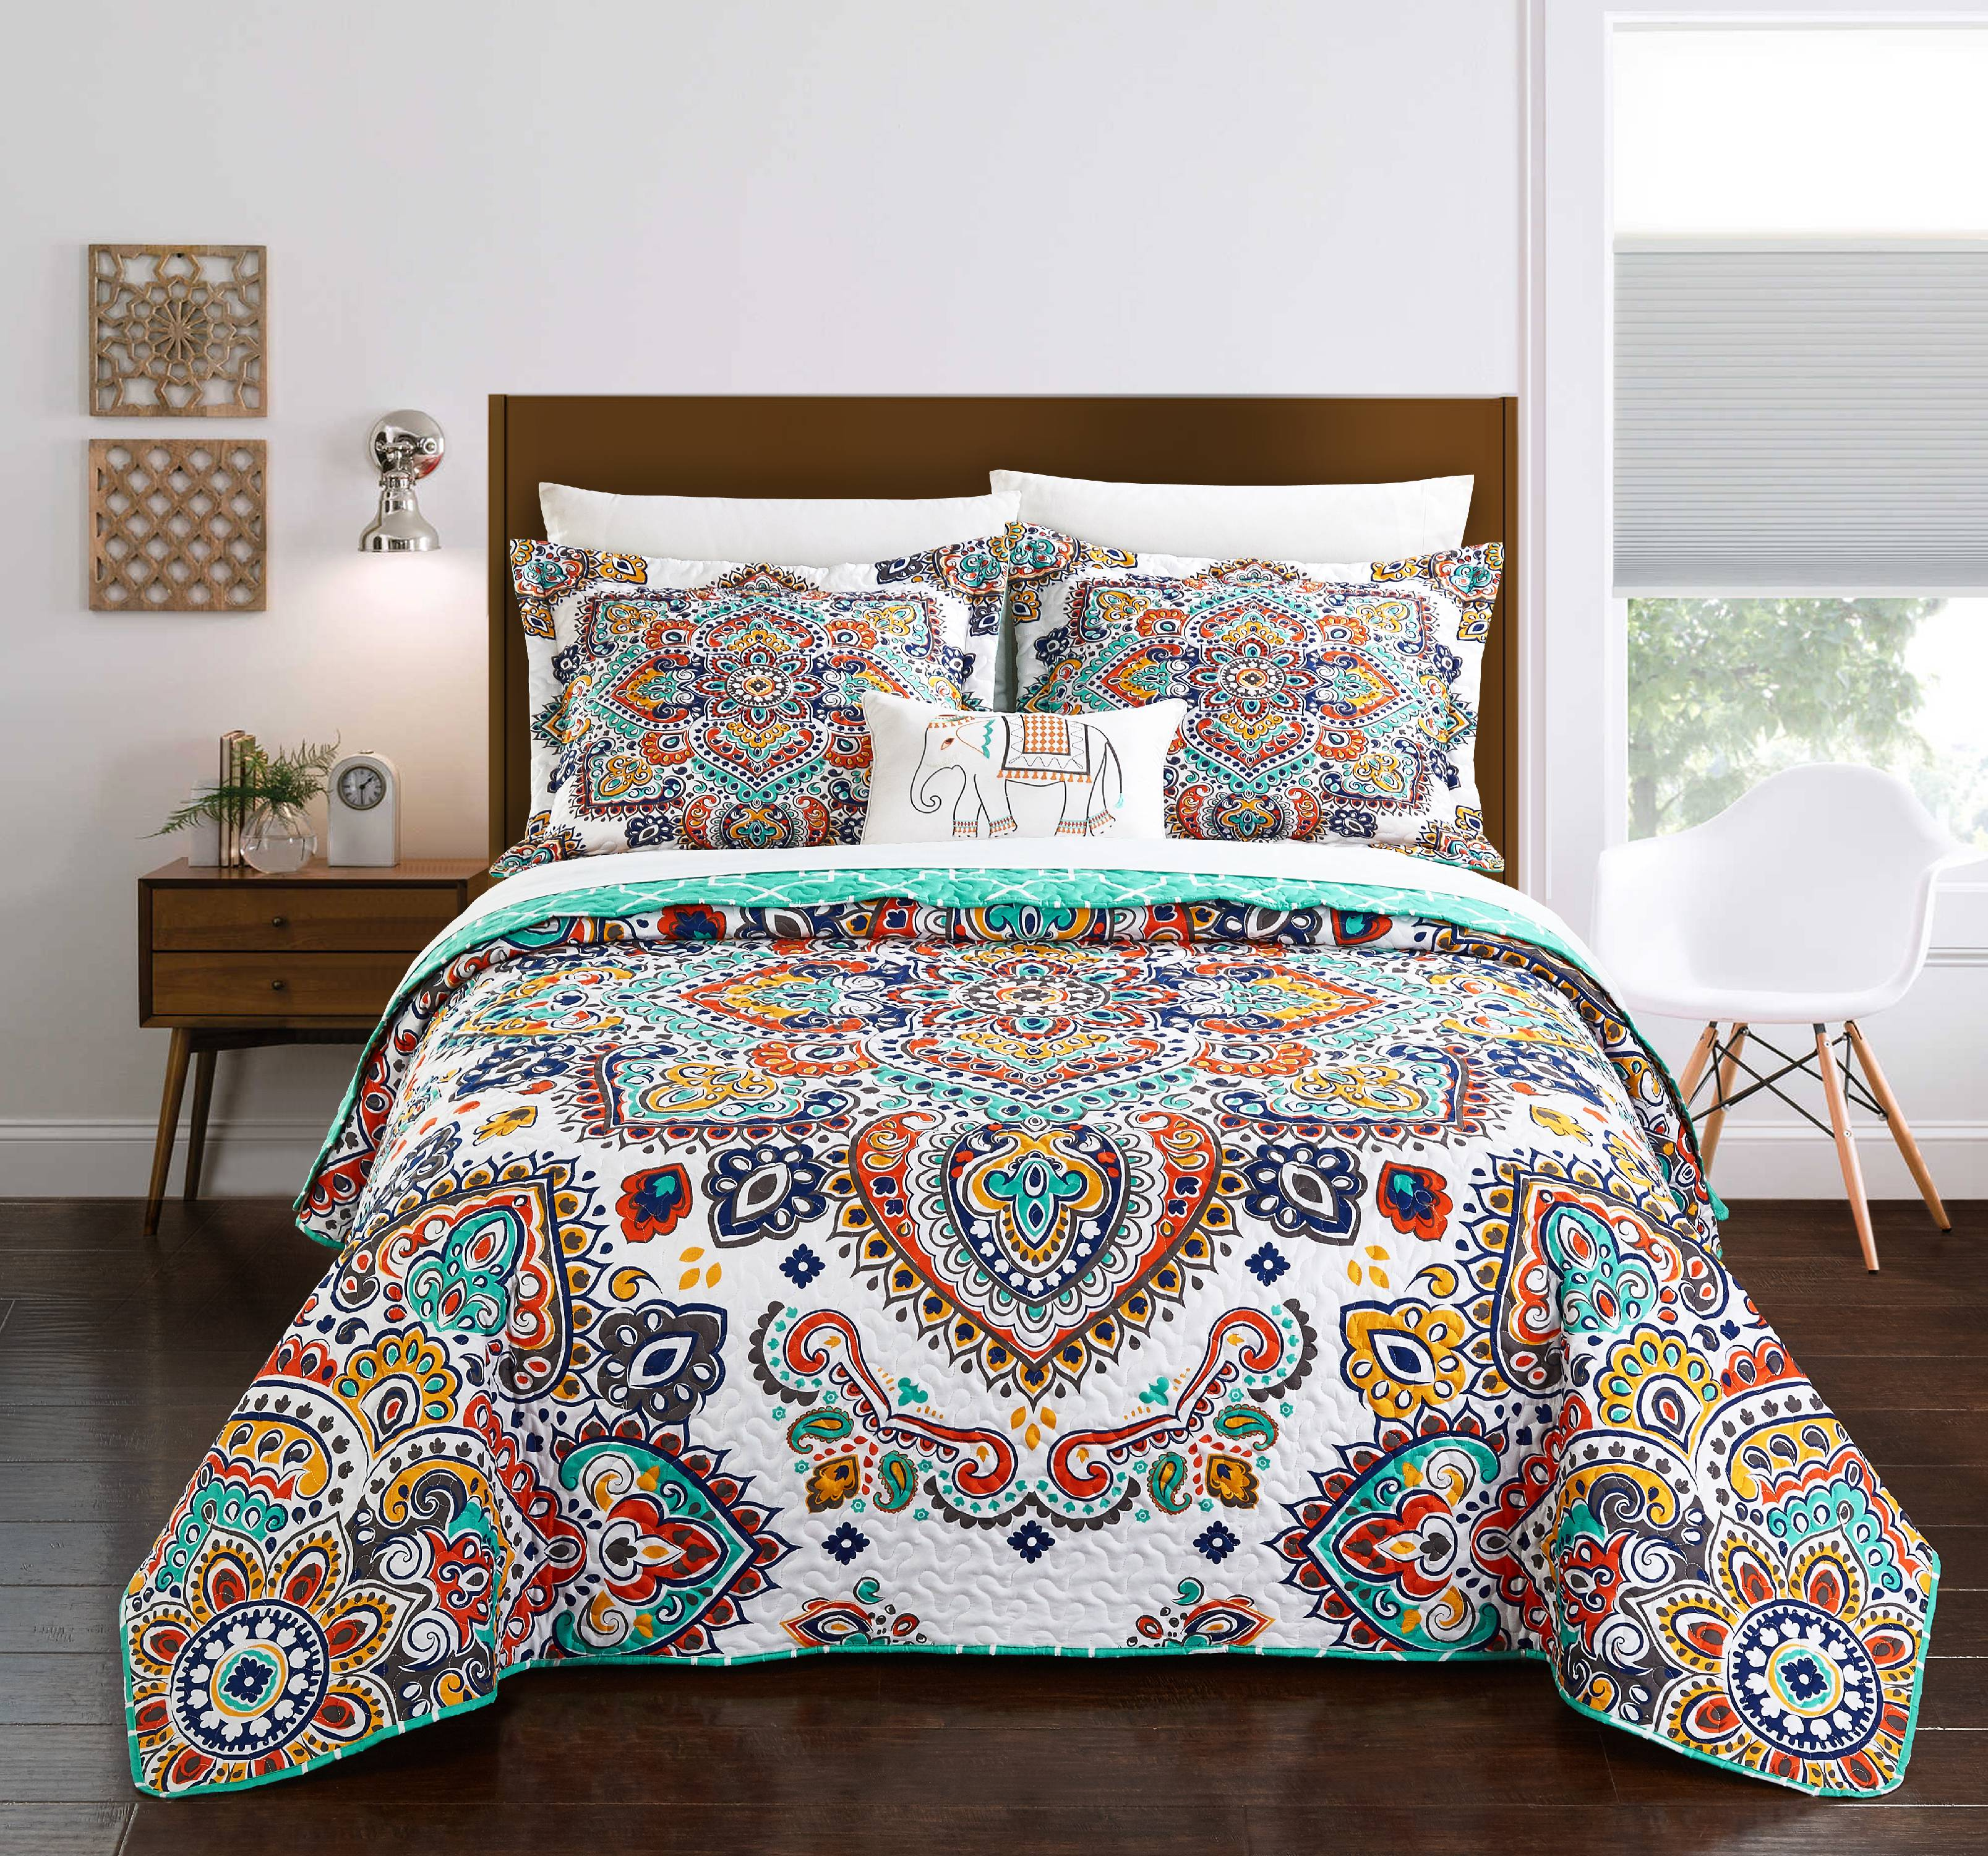 Chic Home Maha 4 Piece Reversible Quilt Set, Bedding Cover by Chic Home